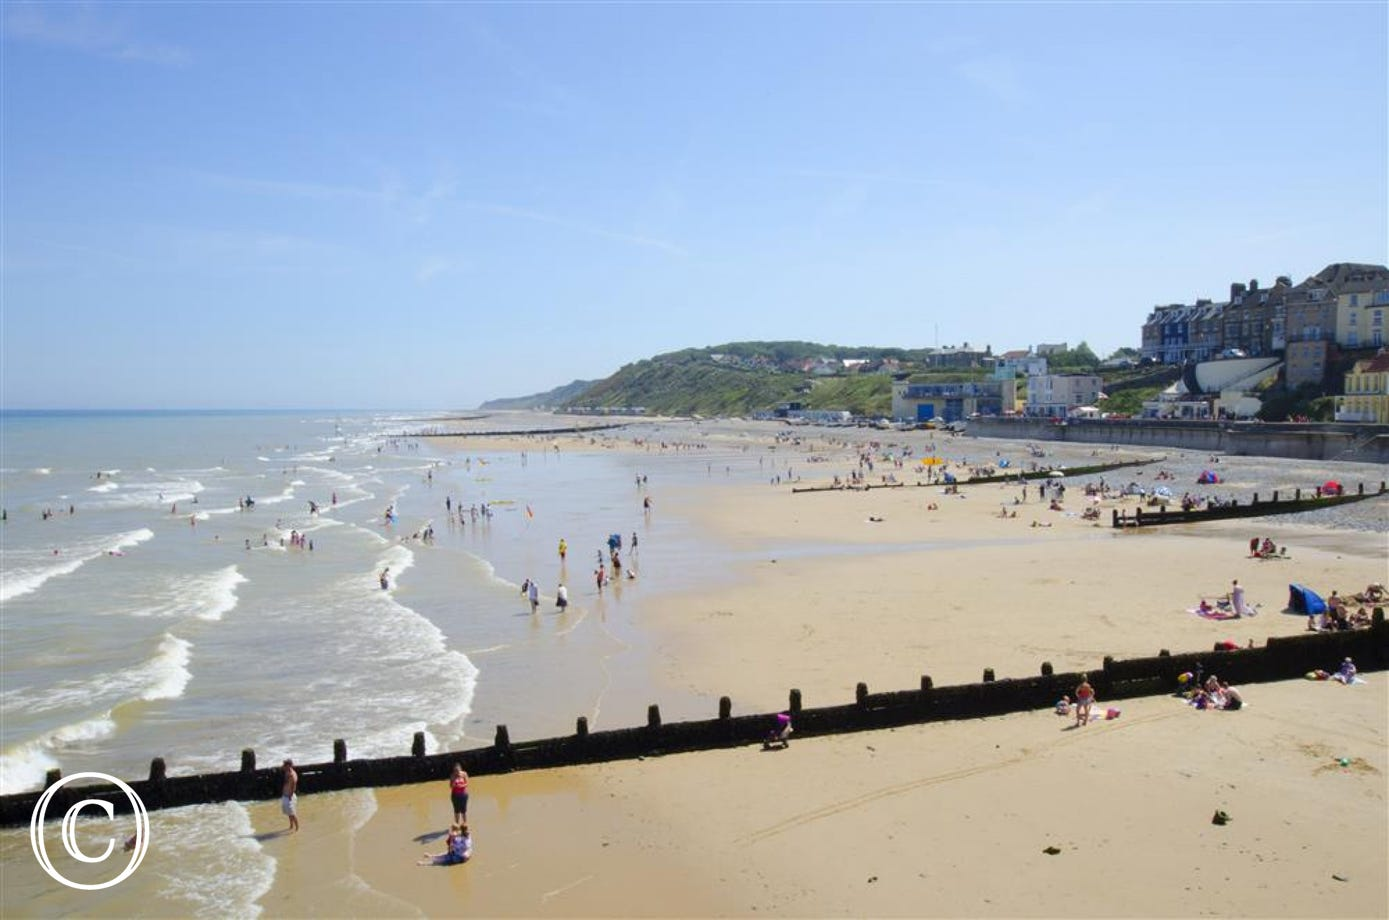 Hanworth is only 6 miles from the sandy beach at Cromer